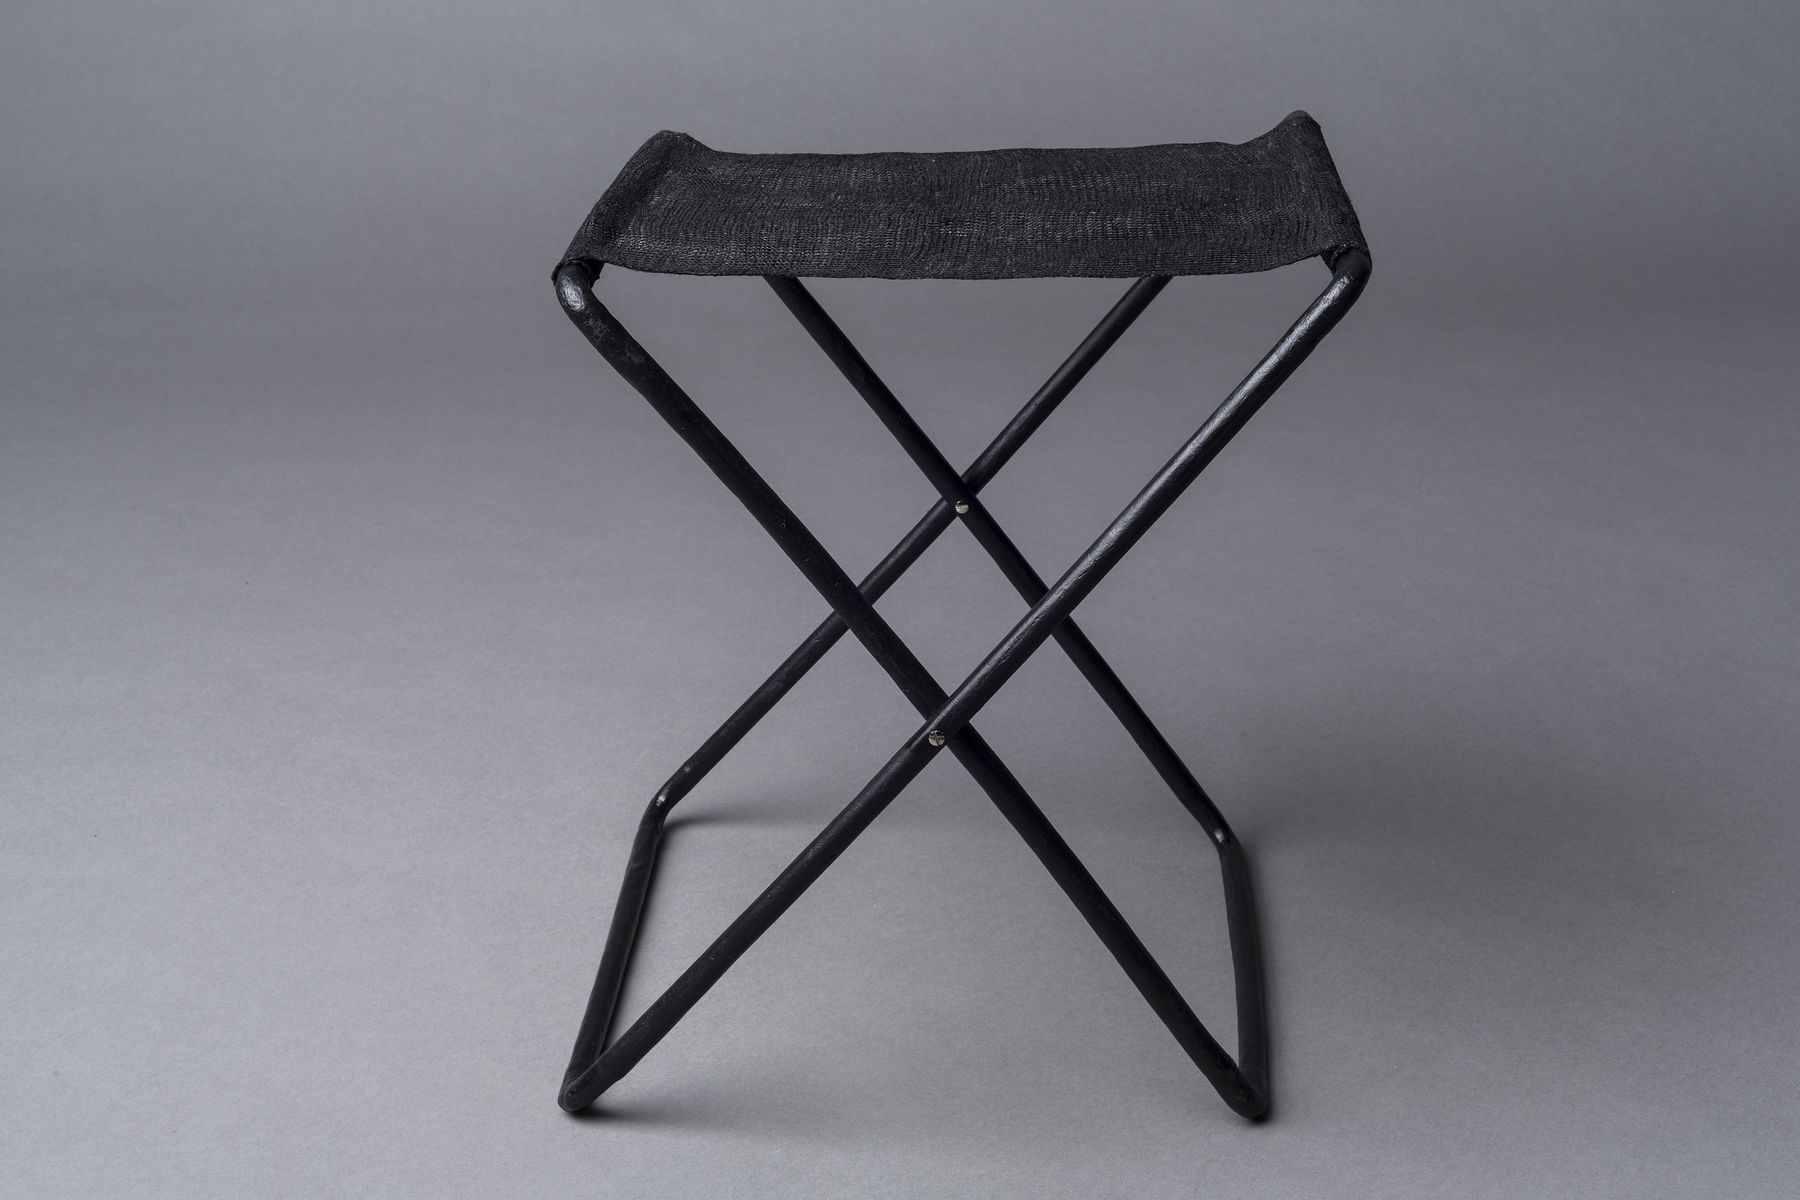 Camping stool made of nanocellulose and Ioncell